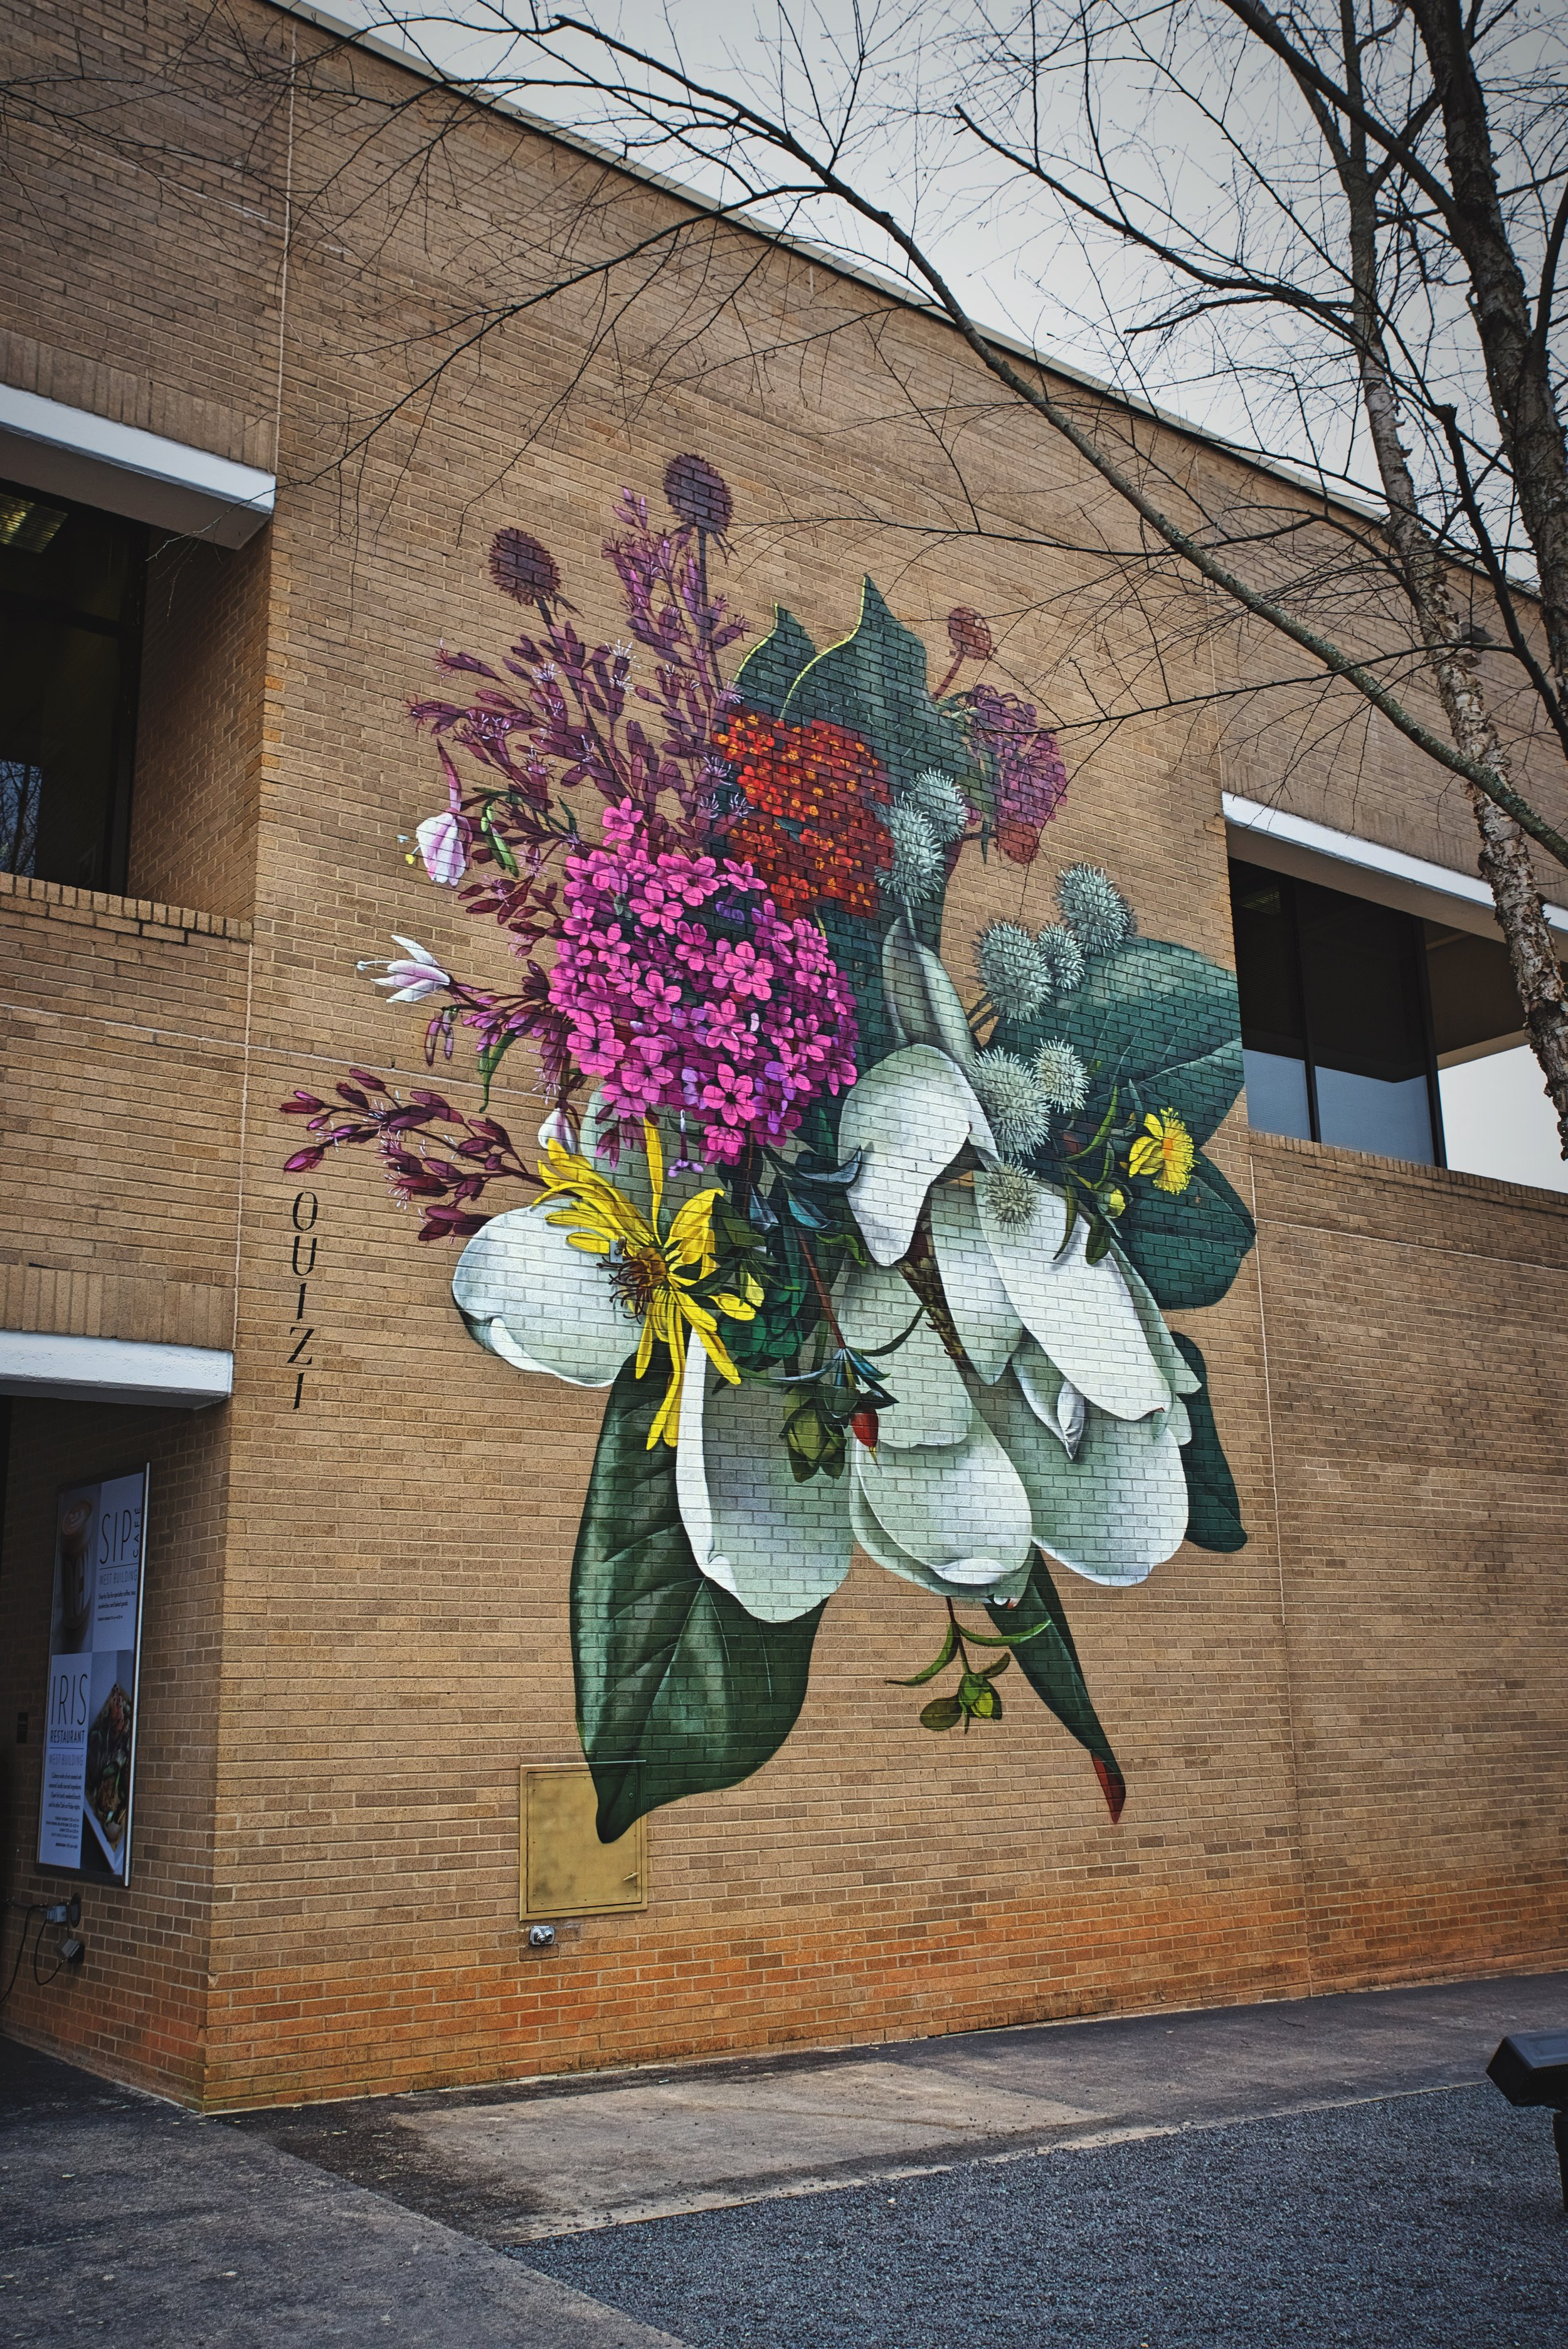 This beautiful mural is on the outside of one of NCMA's buildings.